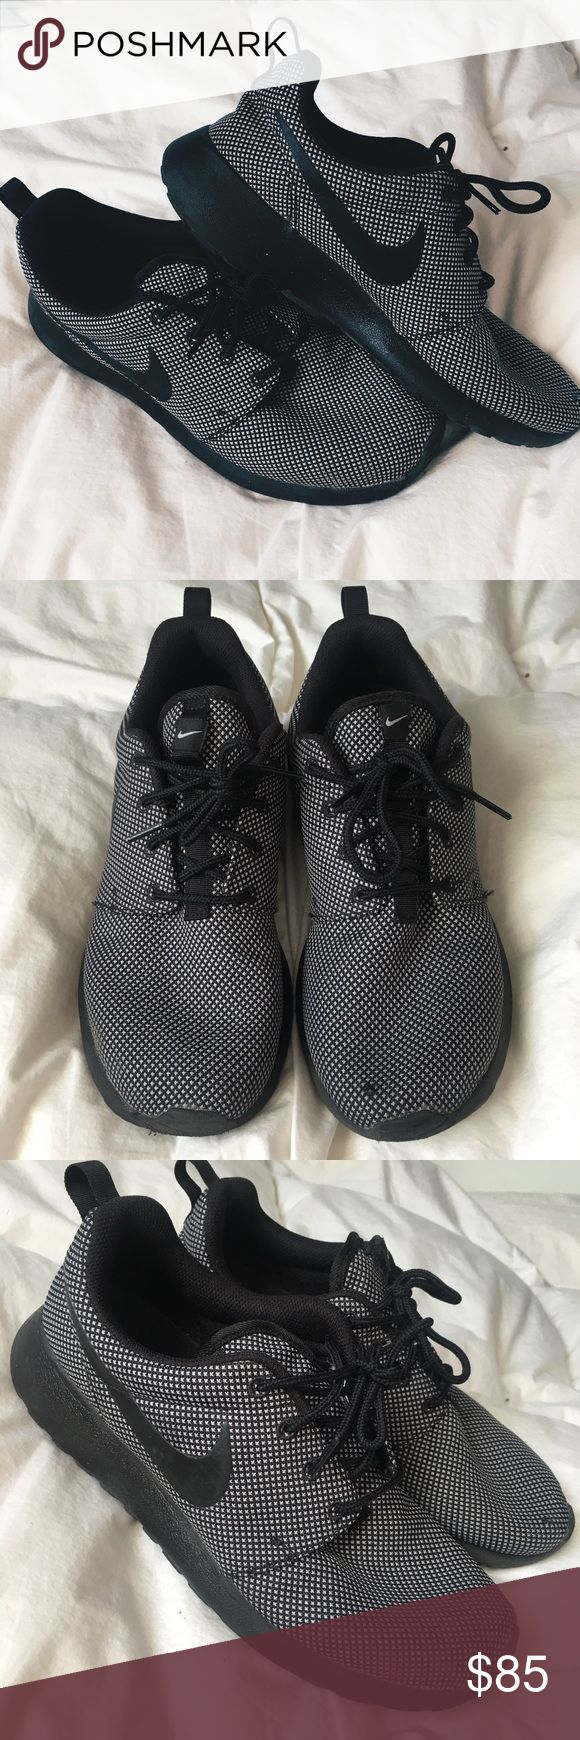 Nike Roshe Black Gray Size 8 Nike Roshe Size 8 Yeezy inspired style. So cute comfy and looks awesome with everything. Good for the gym or casual. Gently used pictures show condition. Originally 135$ 🖤🖤 Nike Shoes Sneakers